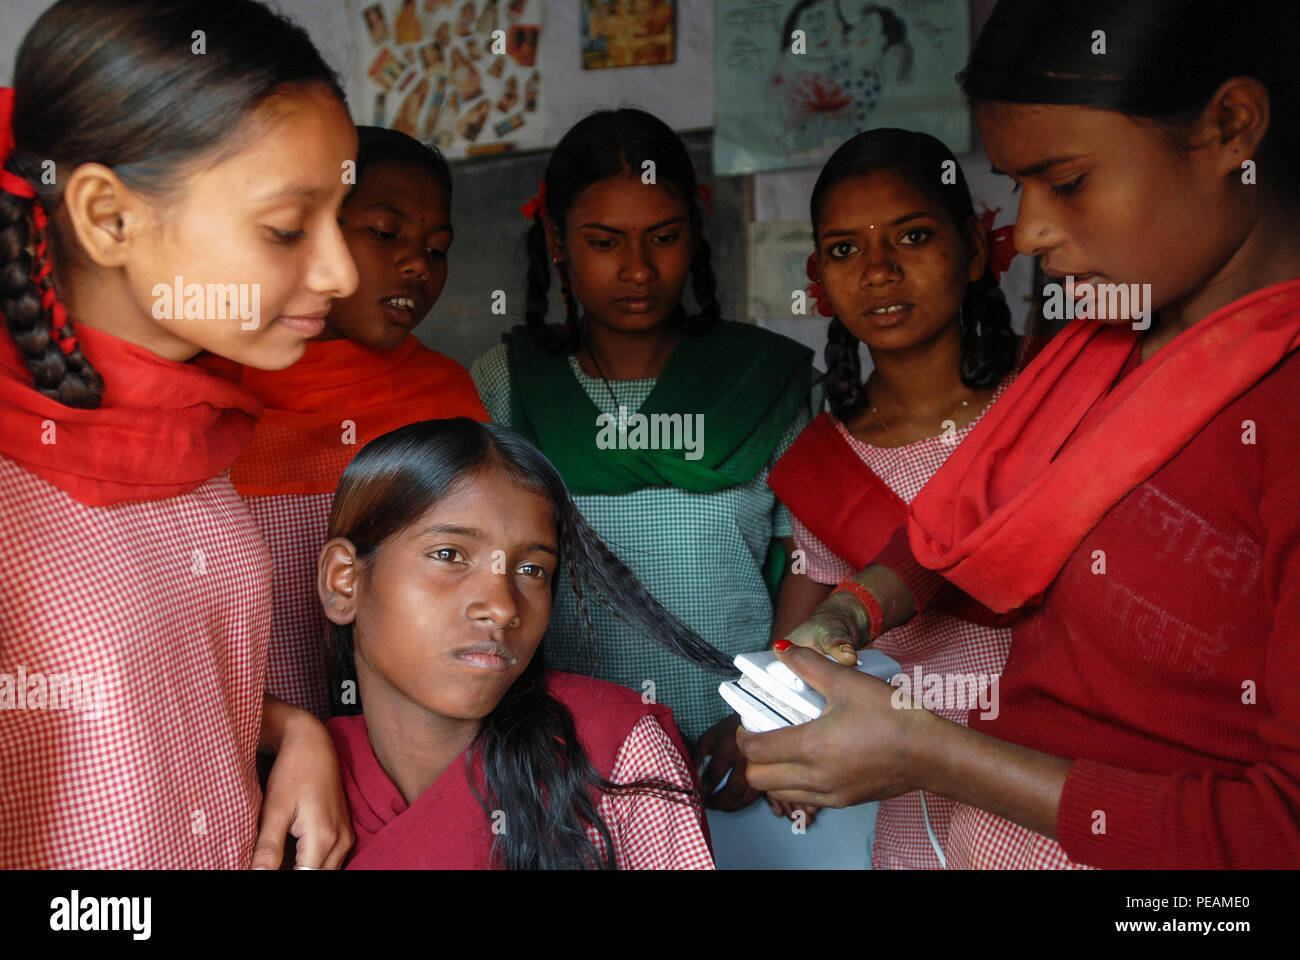 Indian School Girls Hair Style High Resolution Stock Photography And Images Alamy